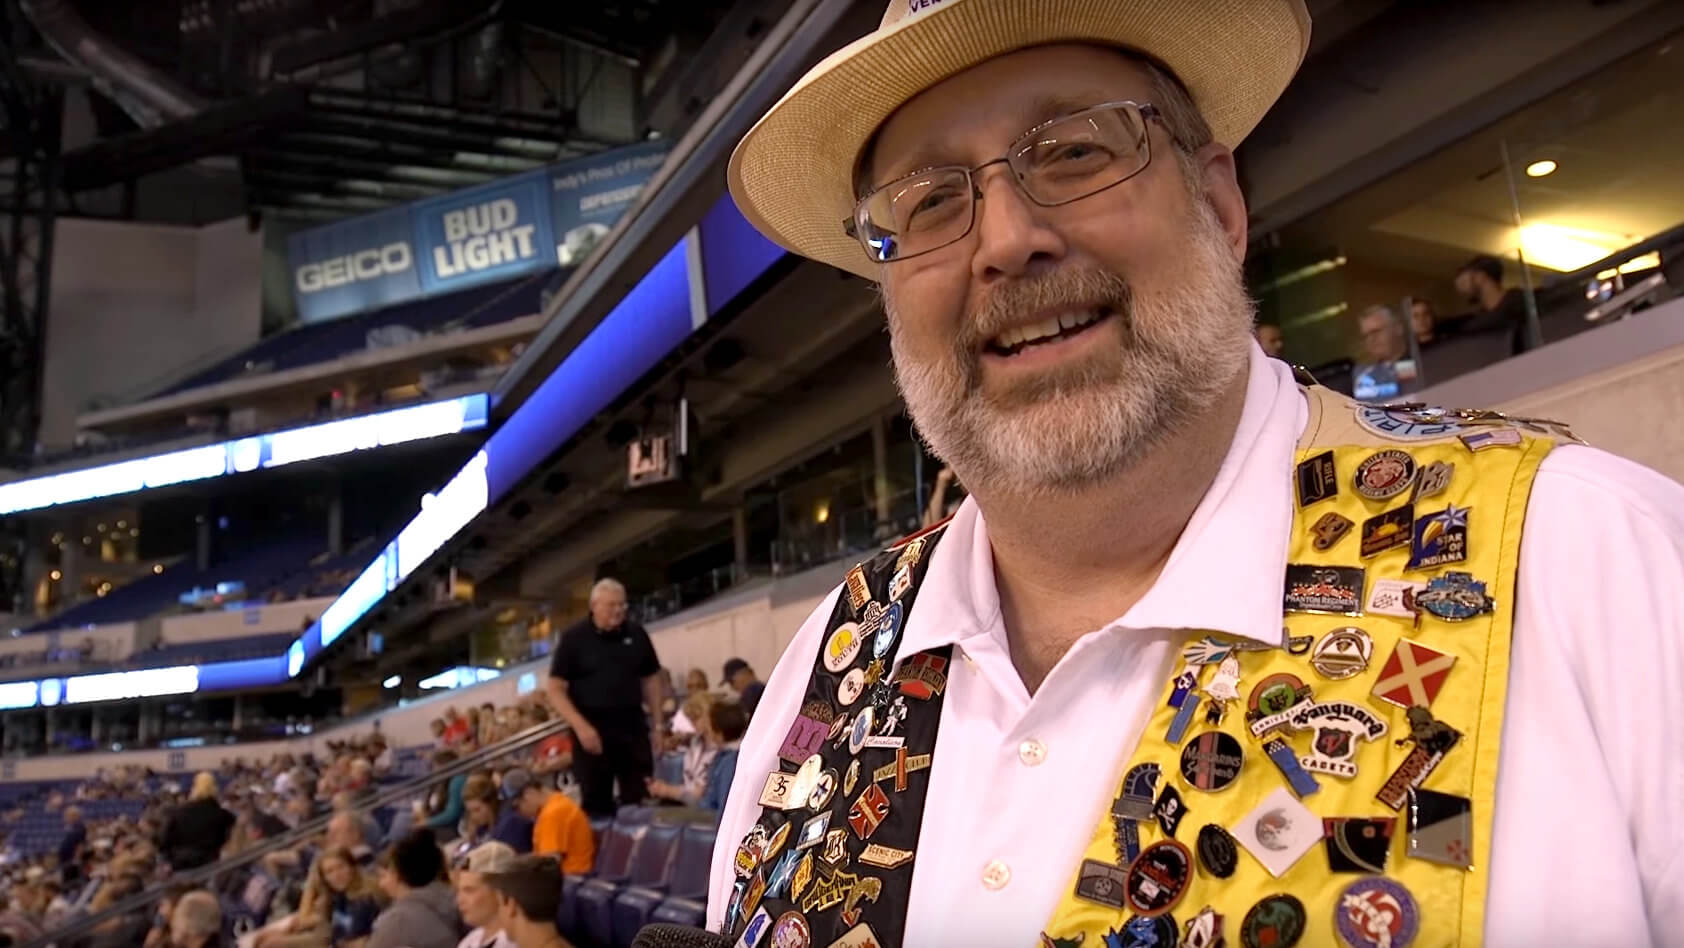 Super fan has a vested interest in drum corps